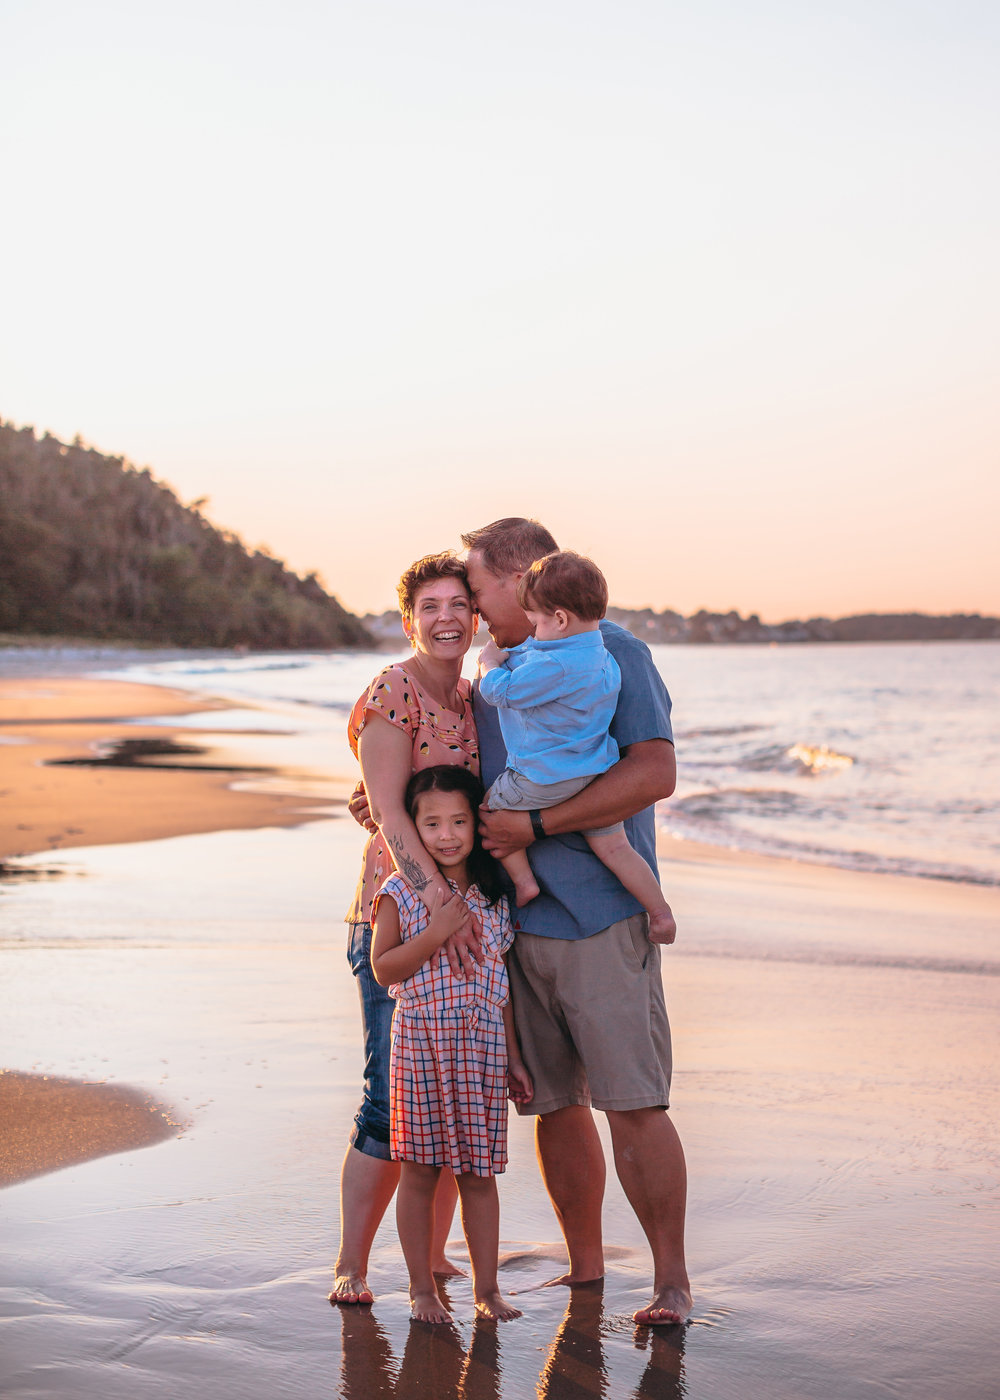 golden-hour-beach-family-photos-boston-family-photographer-joy-leduc.jpg